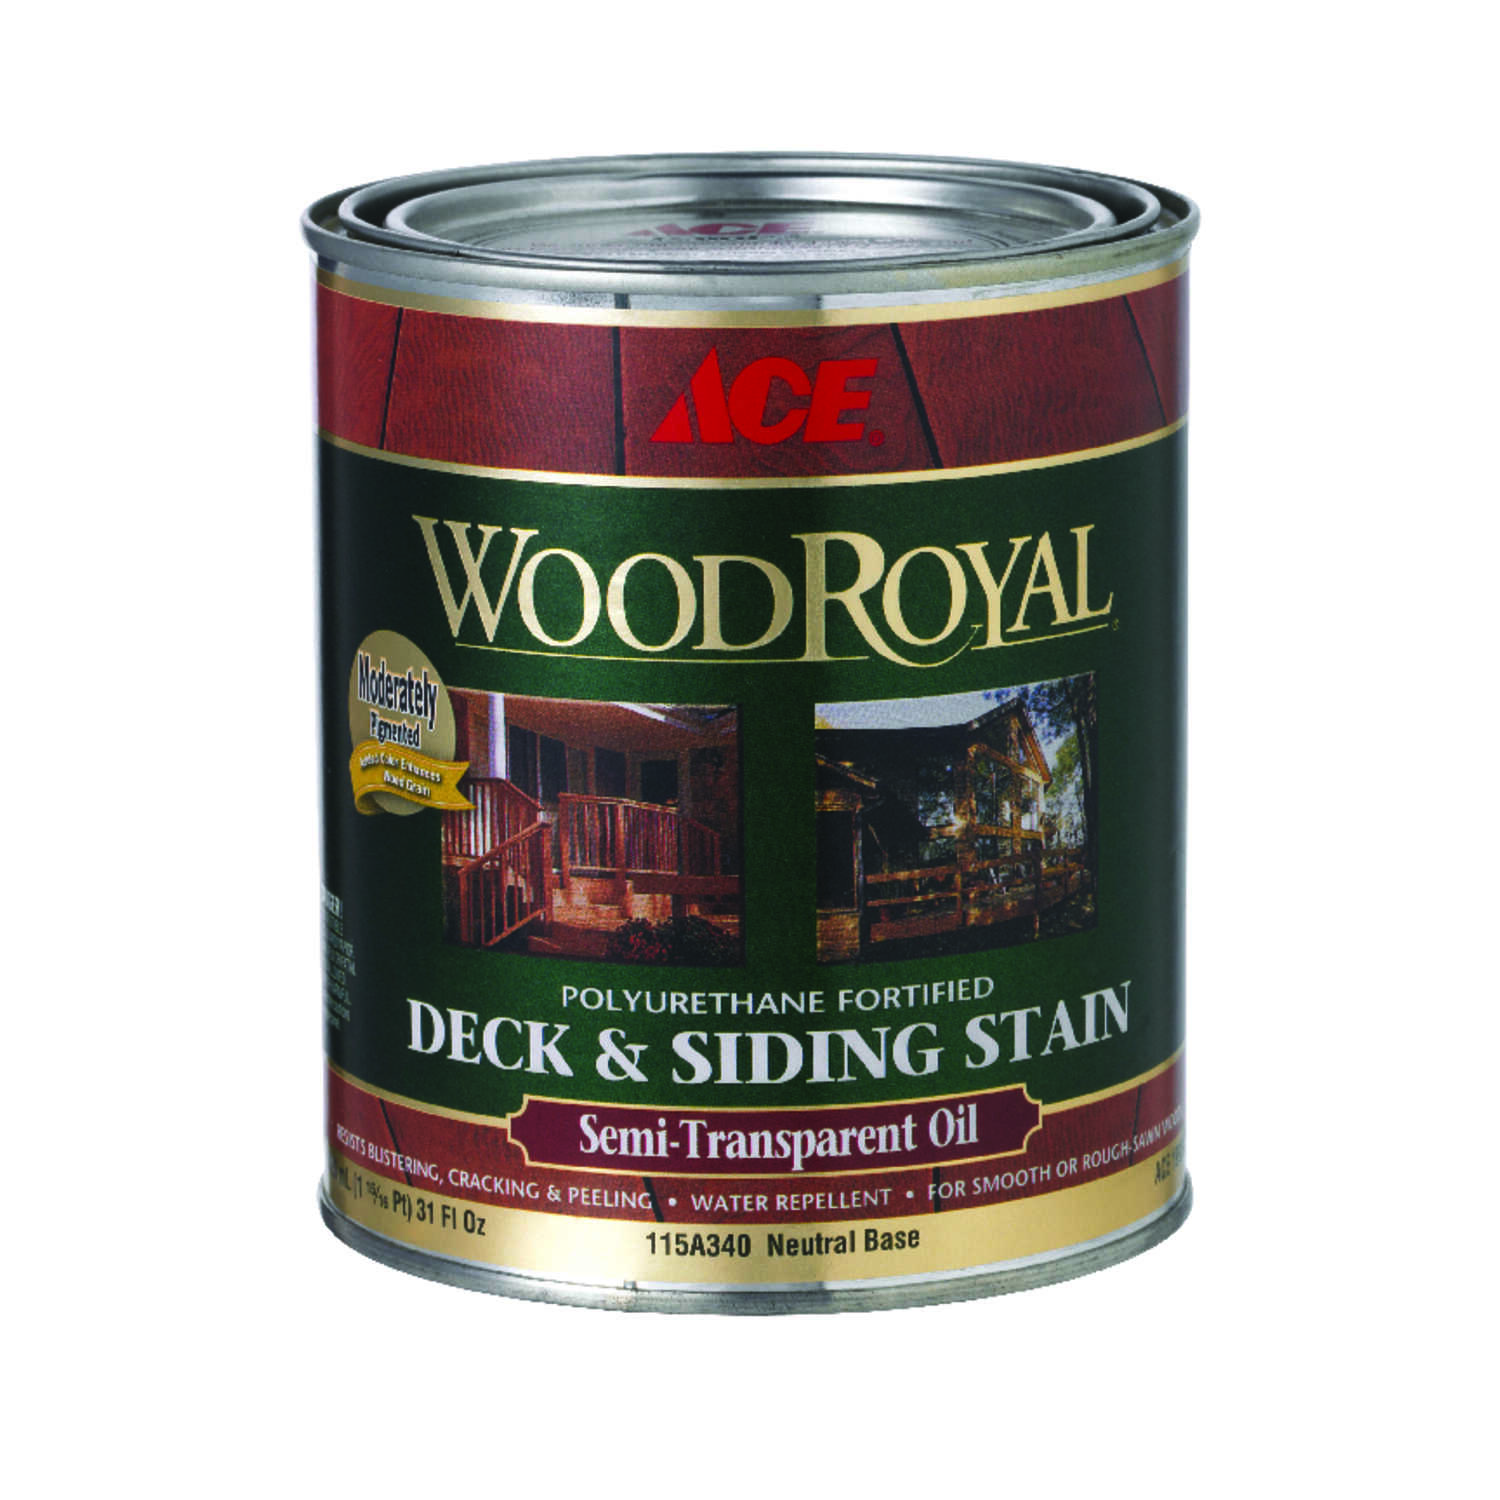 Ace  Wood Royal  Semi-Transparent  Tintable tint base  Neutral Base  Penetrating Oil  Deck and Sidin